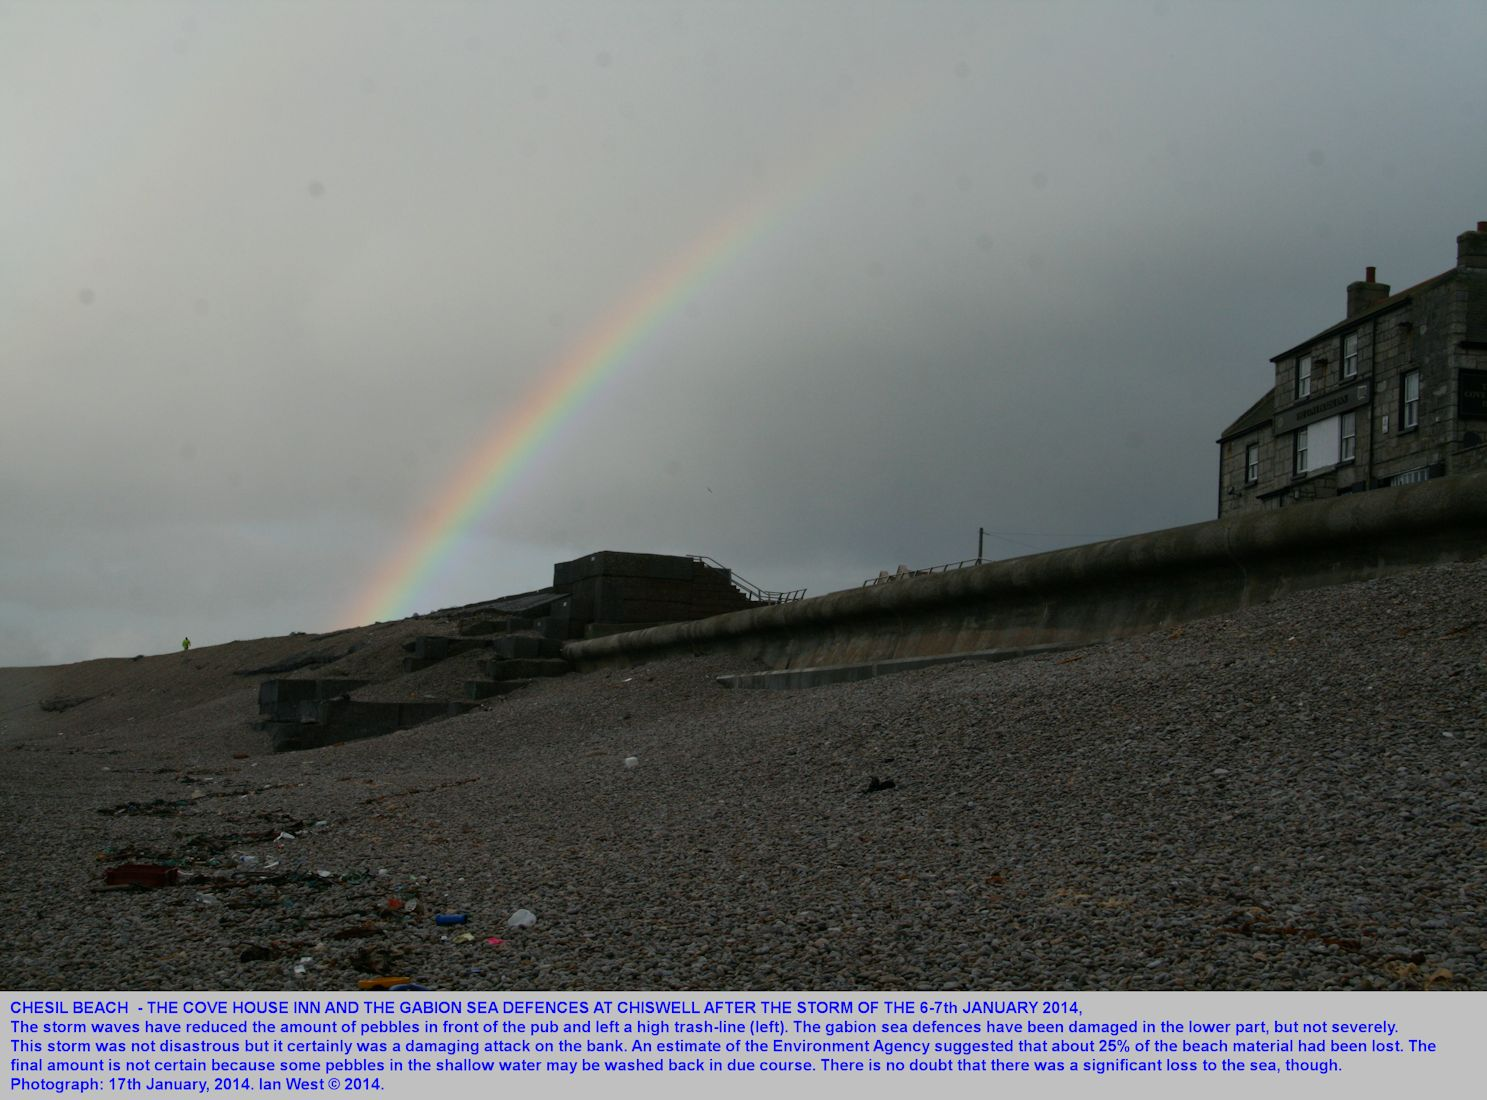 Storm damage on the Chesil Beach in the vicinity of the Cove House Inn, as seen on the 17th January 2014 by Ian West, with a rainbow after a squall